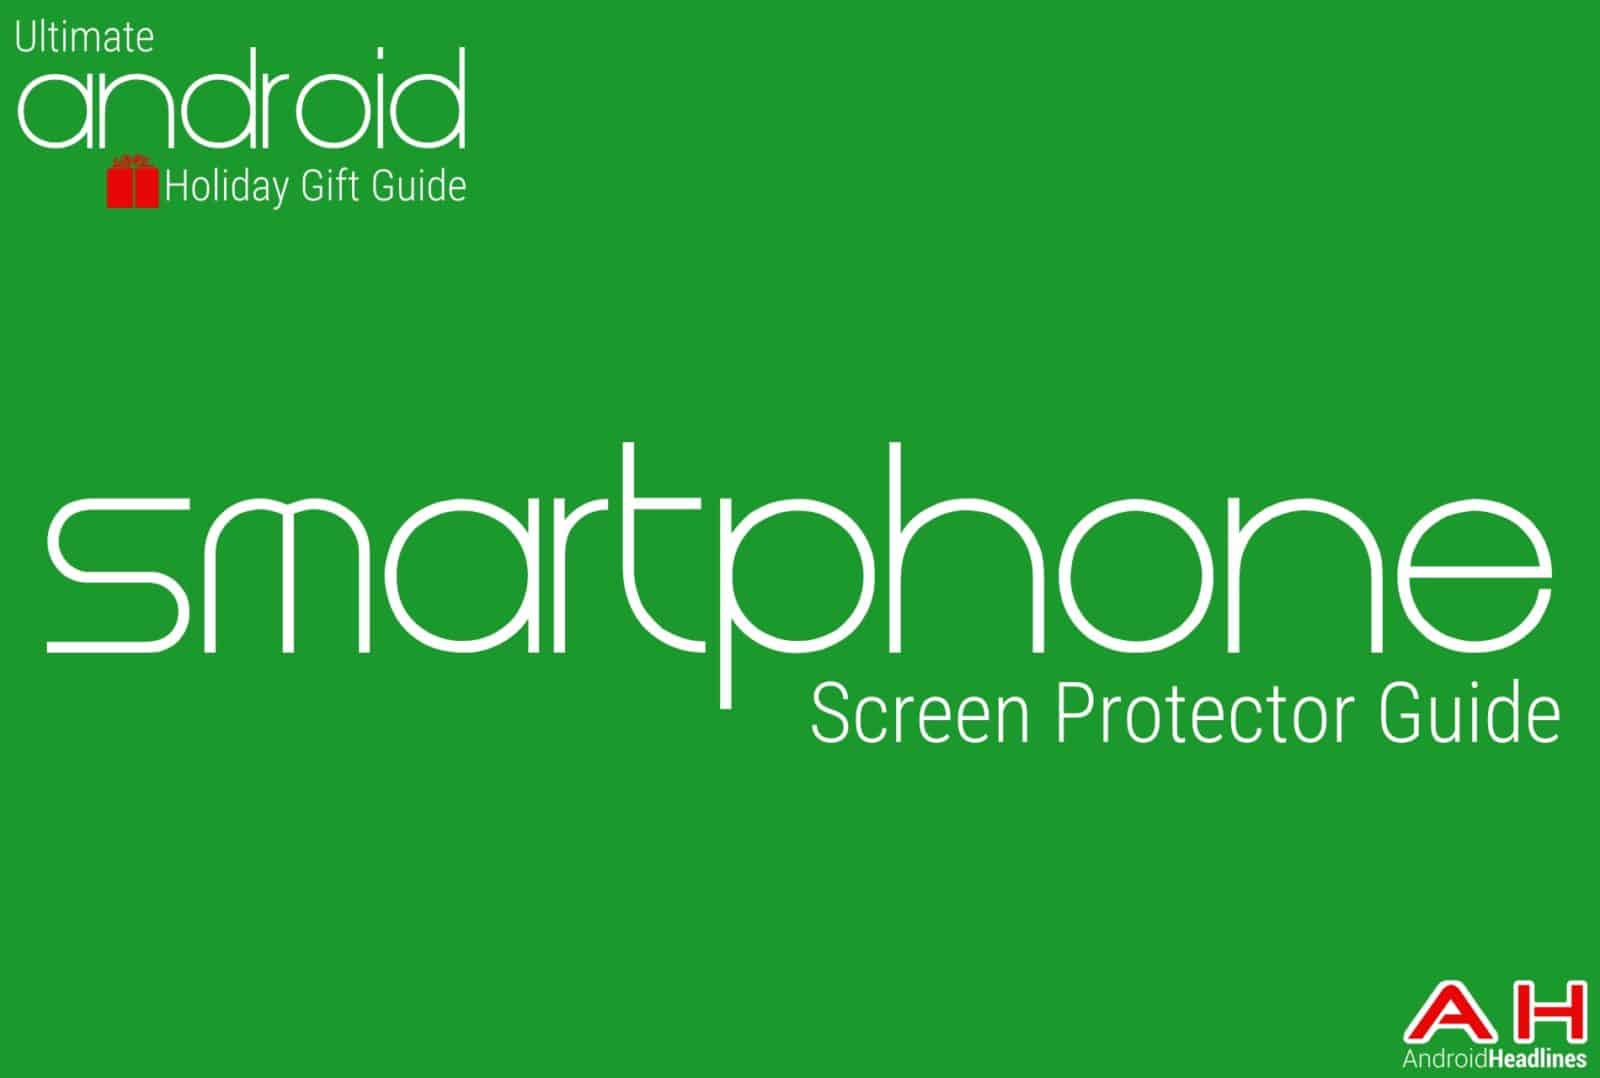 Best Android Smartphones Screen Protector Guide - Android Holiday Gift Guide Top 10